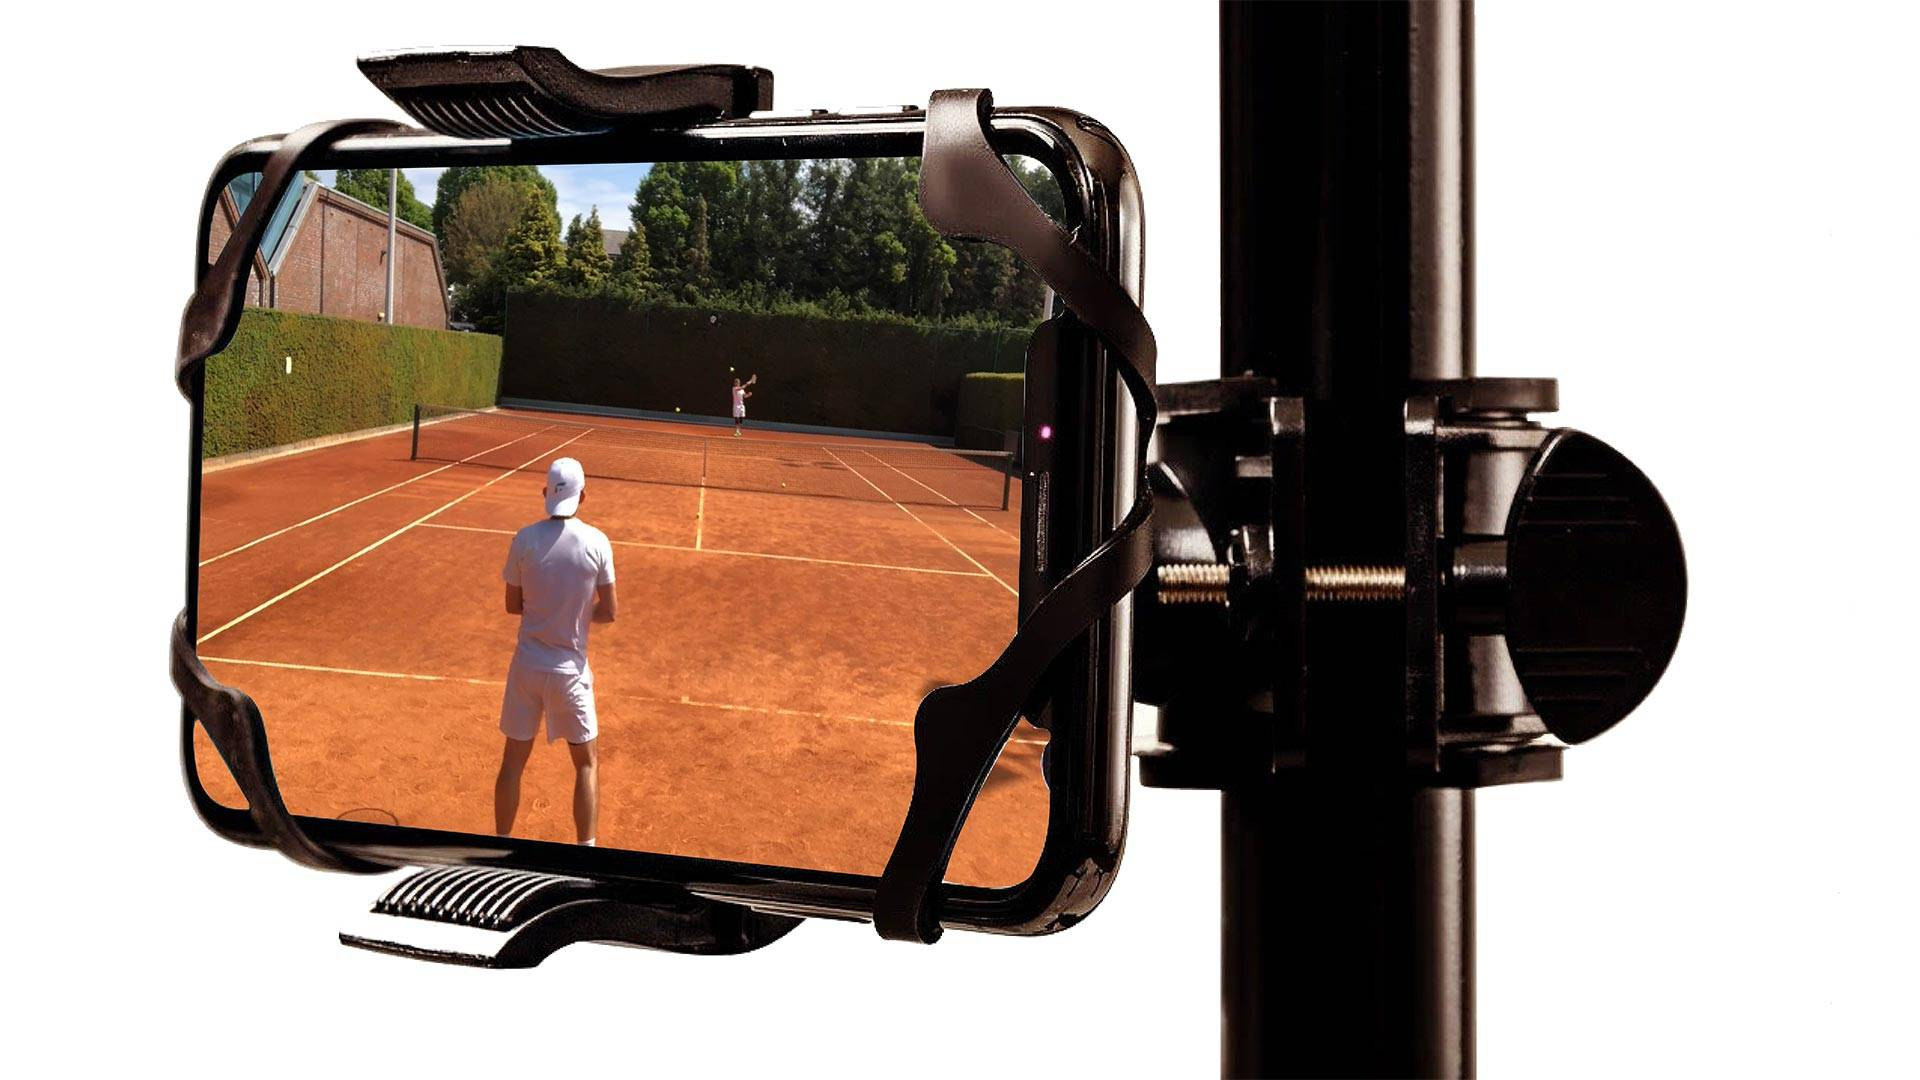 The camera mount for tennis players